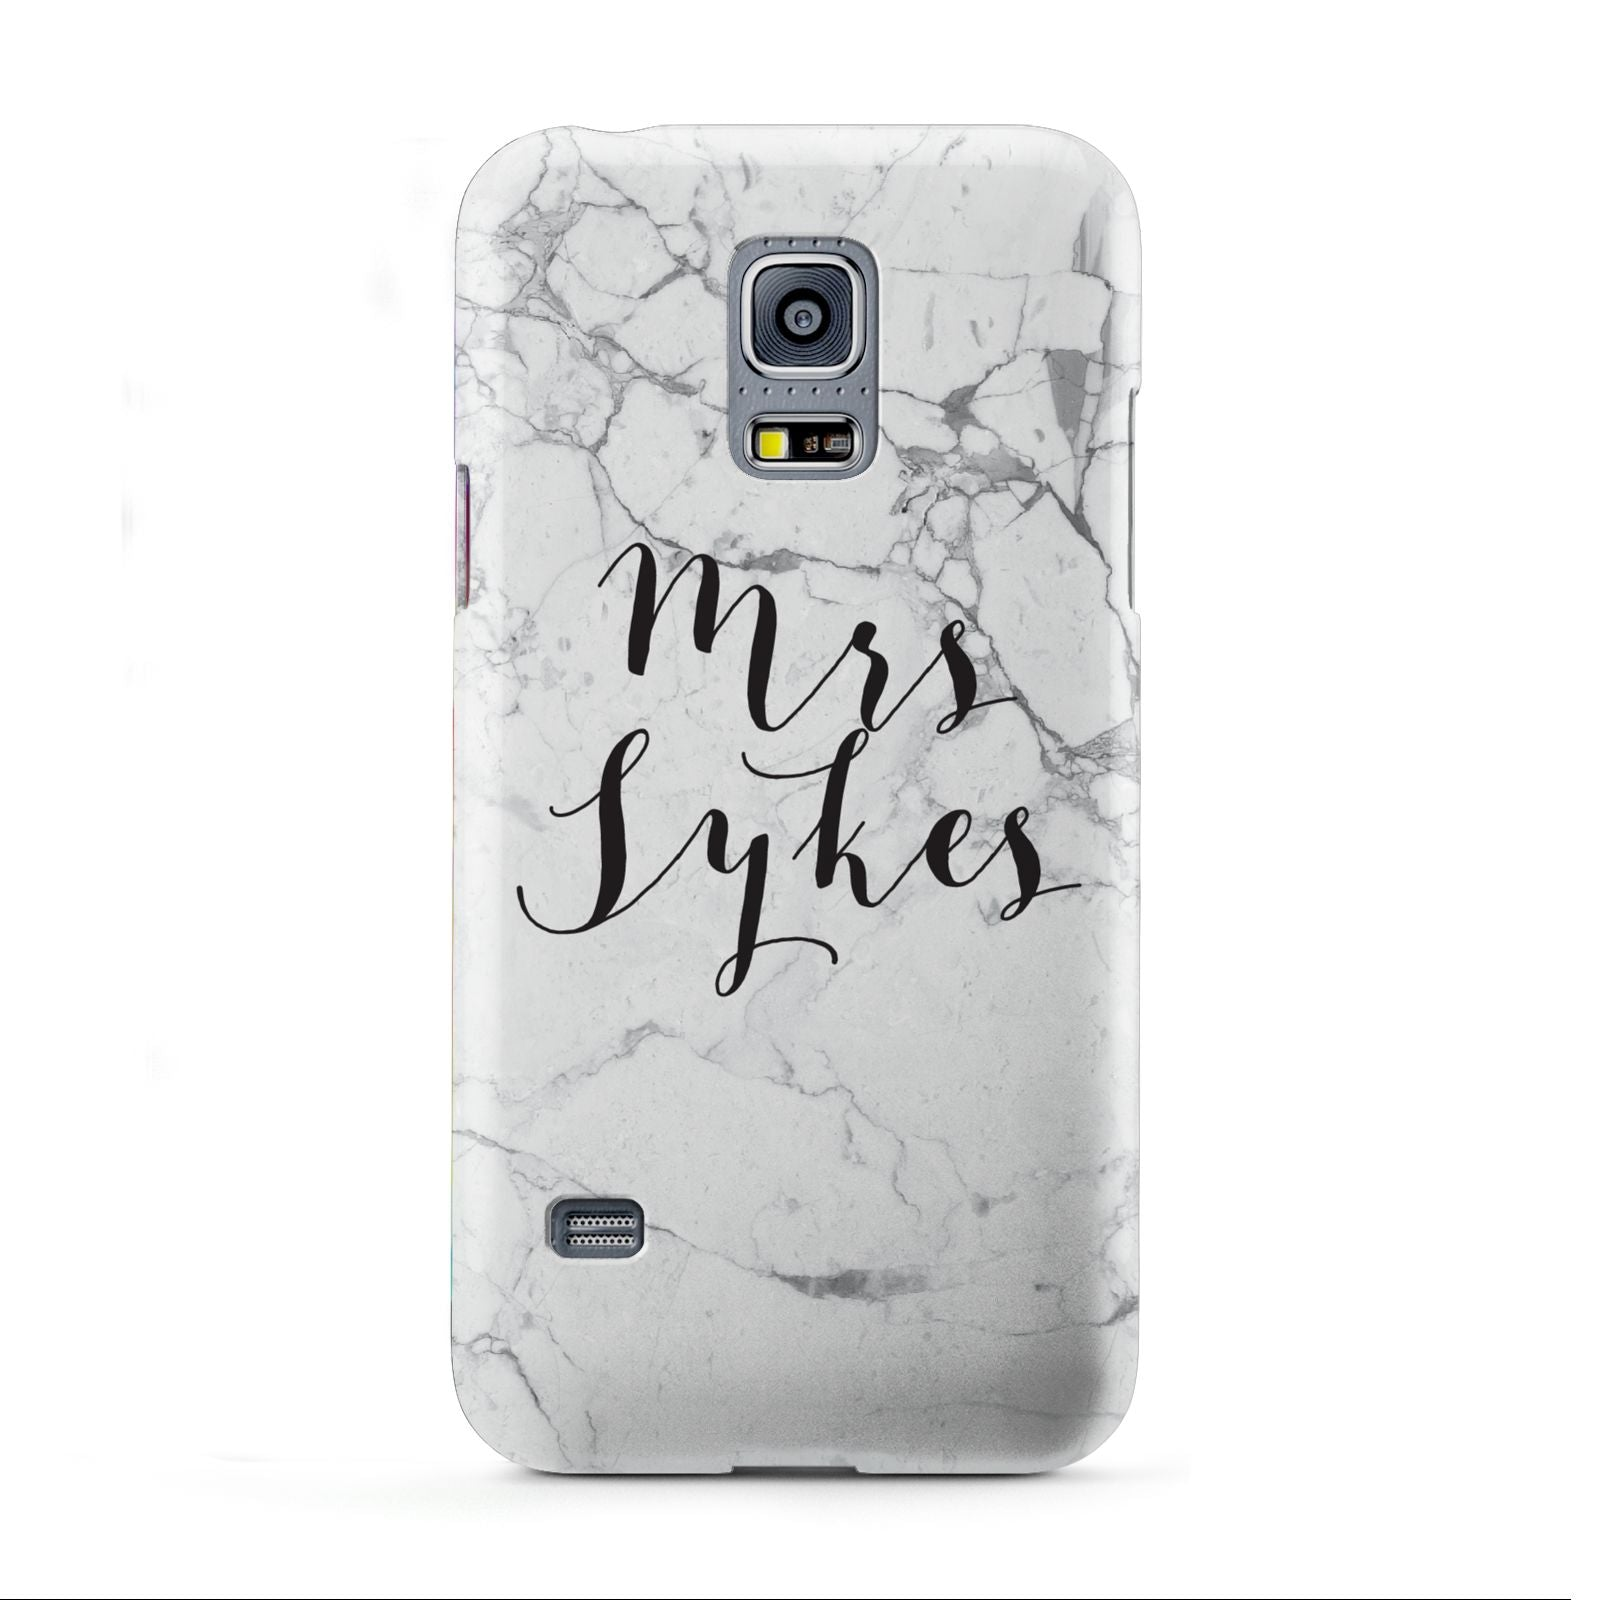 Surname Personalised Marble Samsung Galaxy S5 Mini Case